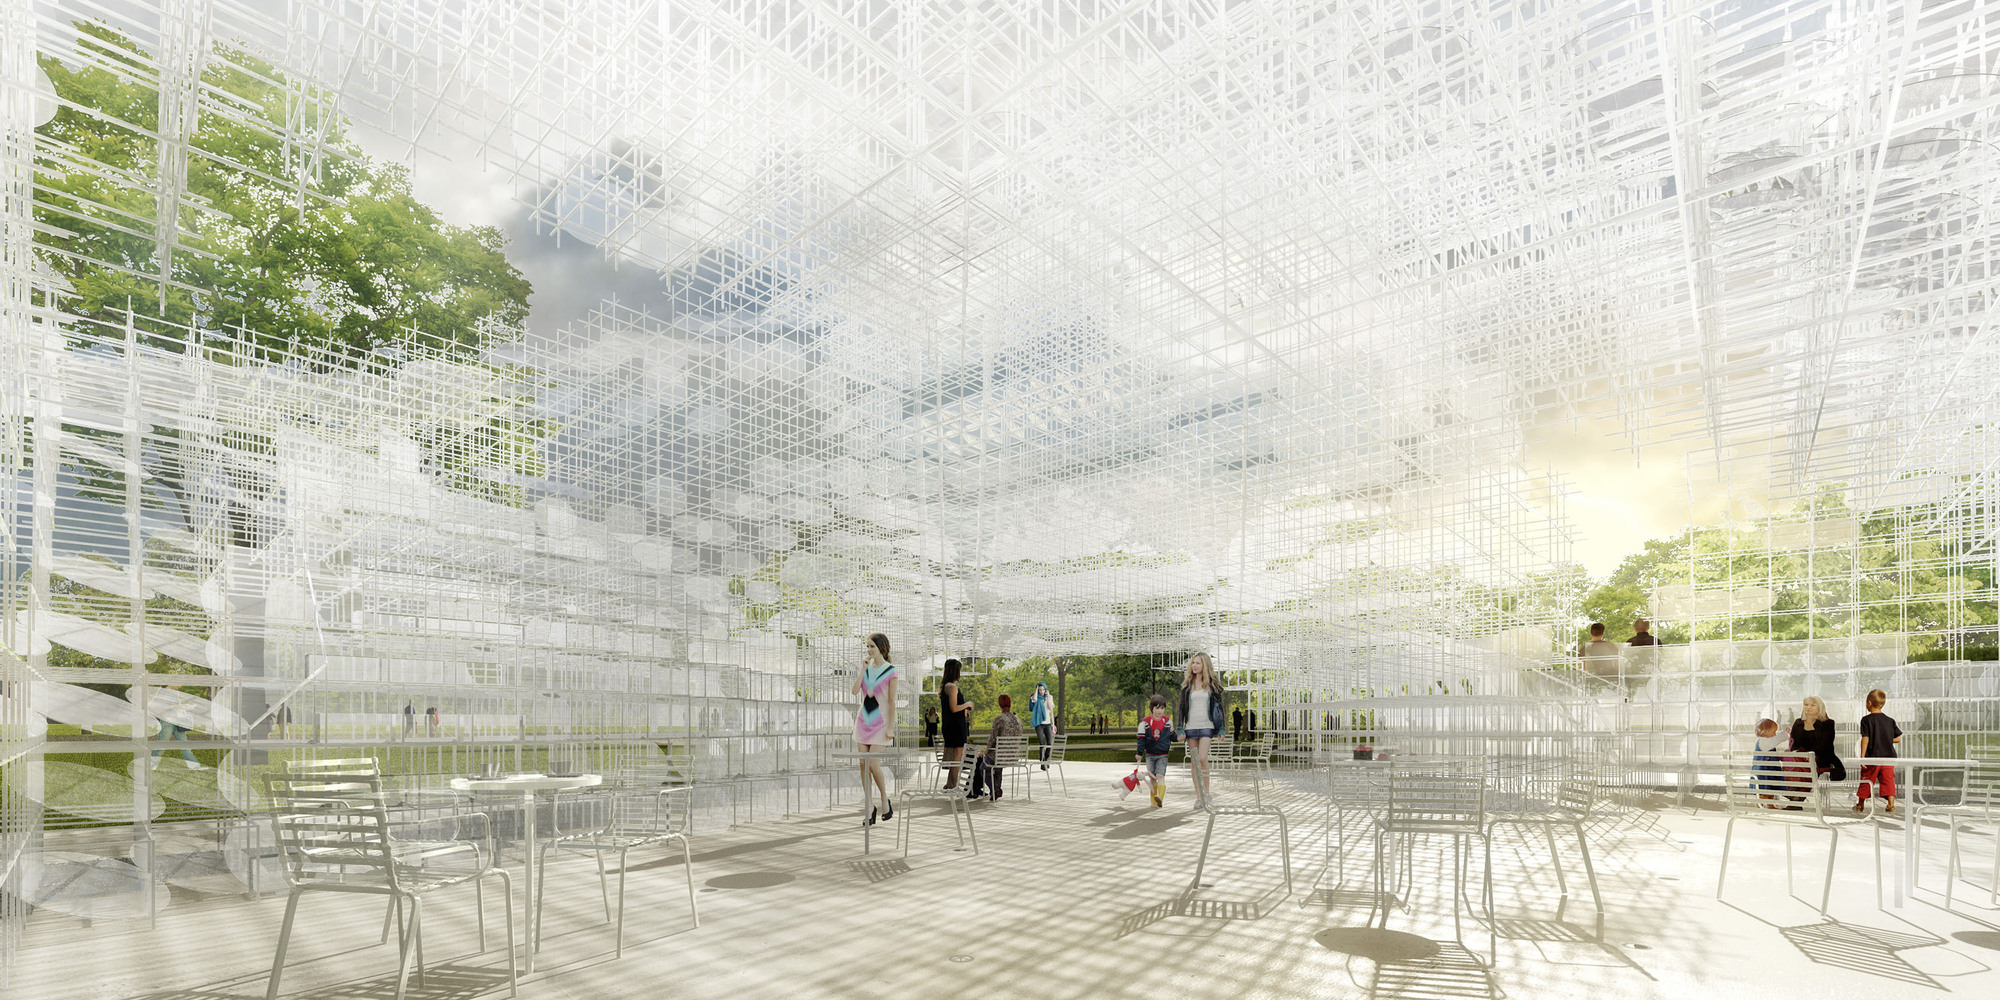 The Serpentine Gallery Pavilion 2013 will be design by Sou Fujimoto Serpentine Gallery Pavilion 2013 Serpentine Gallery Pavilion 2013 511cd309b3fc4b42d20001de sou fujimoto dise ar el serpentine gallery pavilion 2013 130204 interior  final press page1